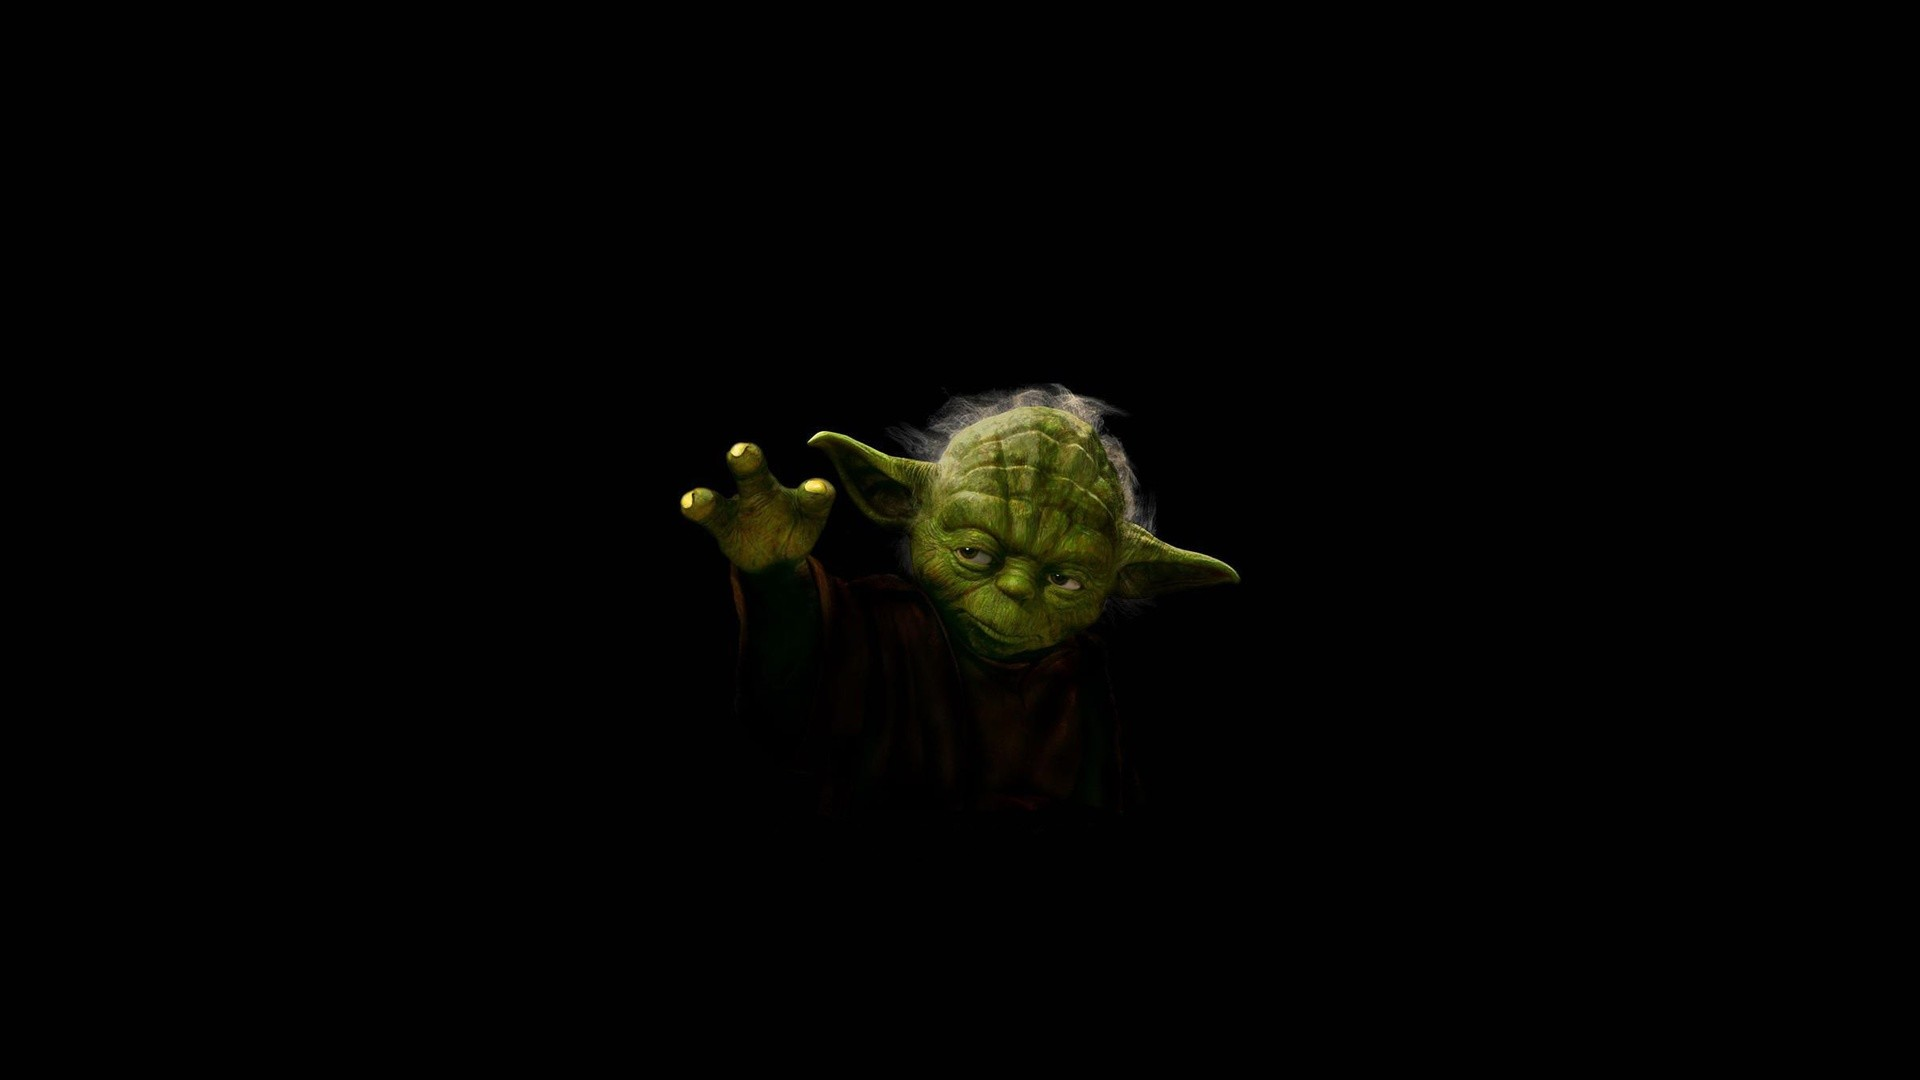 8 best Star Wars images on Pinterest | Star wars wallpaper, Wallpaper  pictures and Clone wars